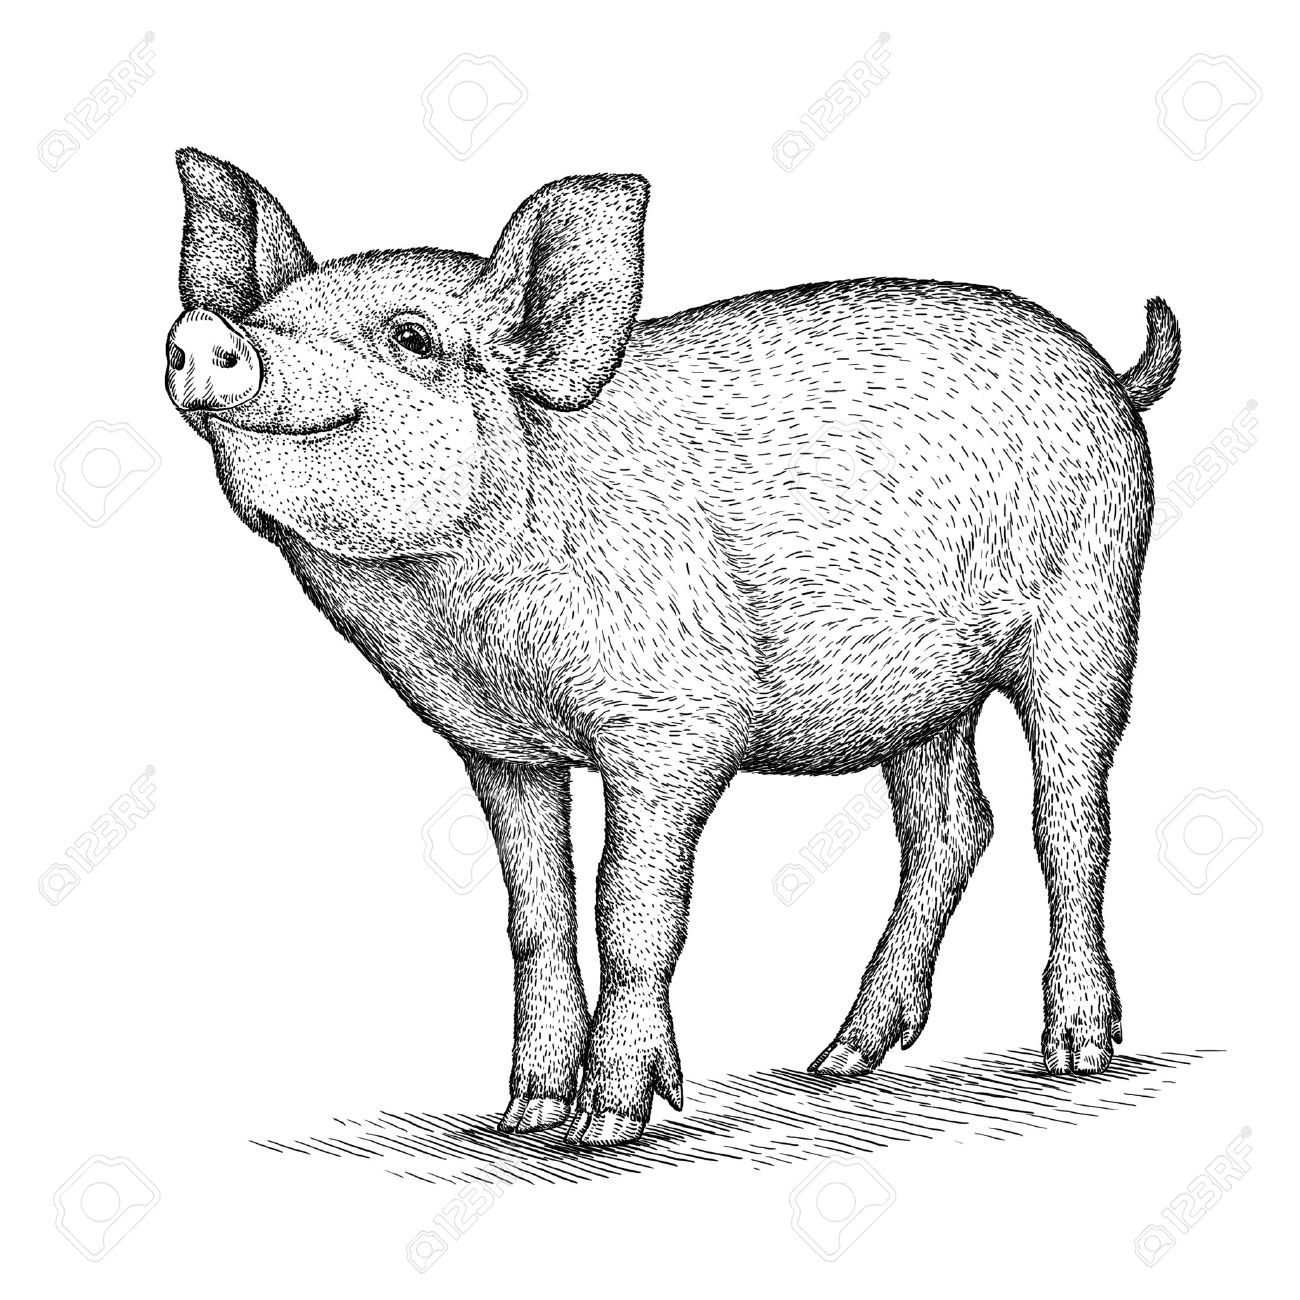 1300x1300 Engrave Isolated Pig Illustration Sketch. Linear Art Stock Photo